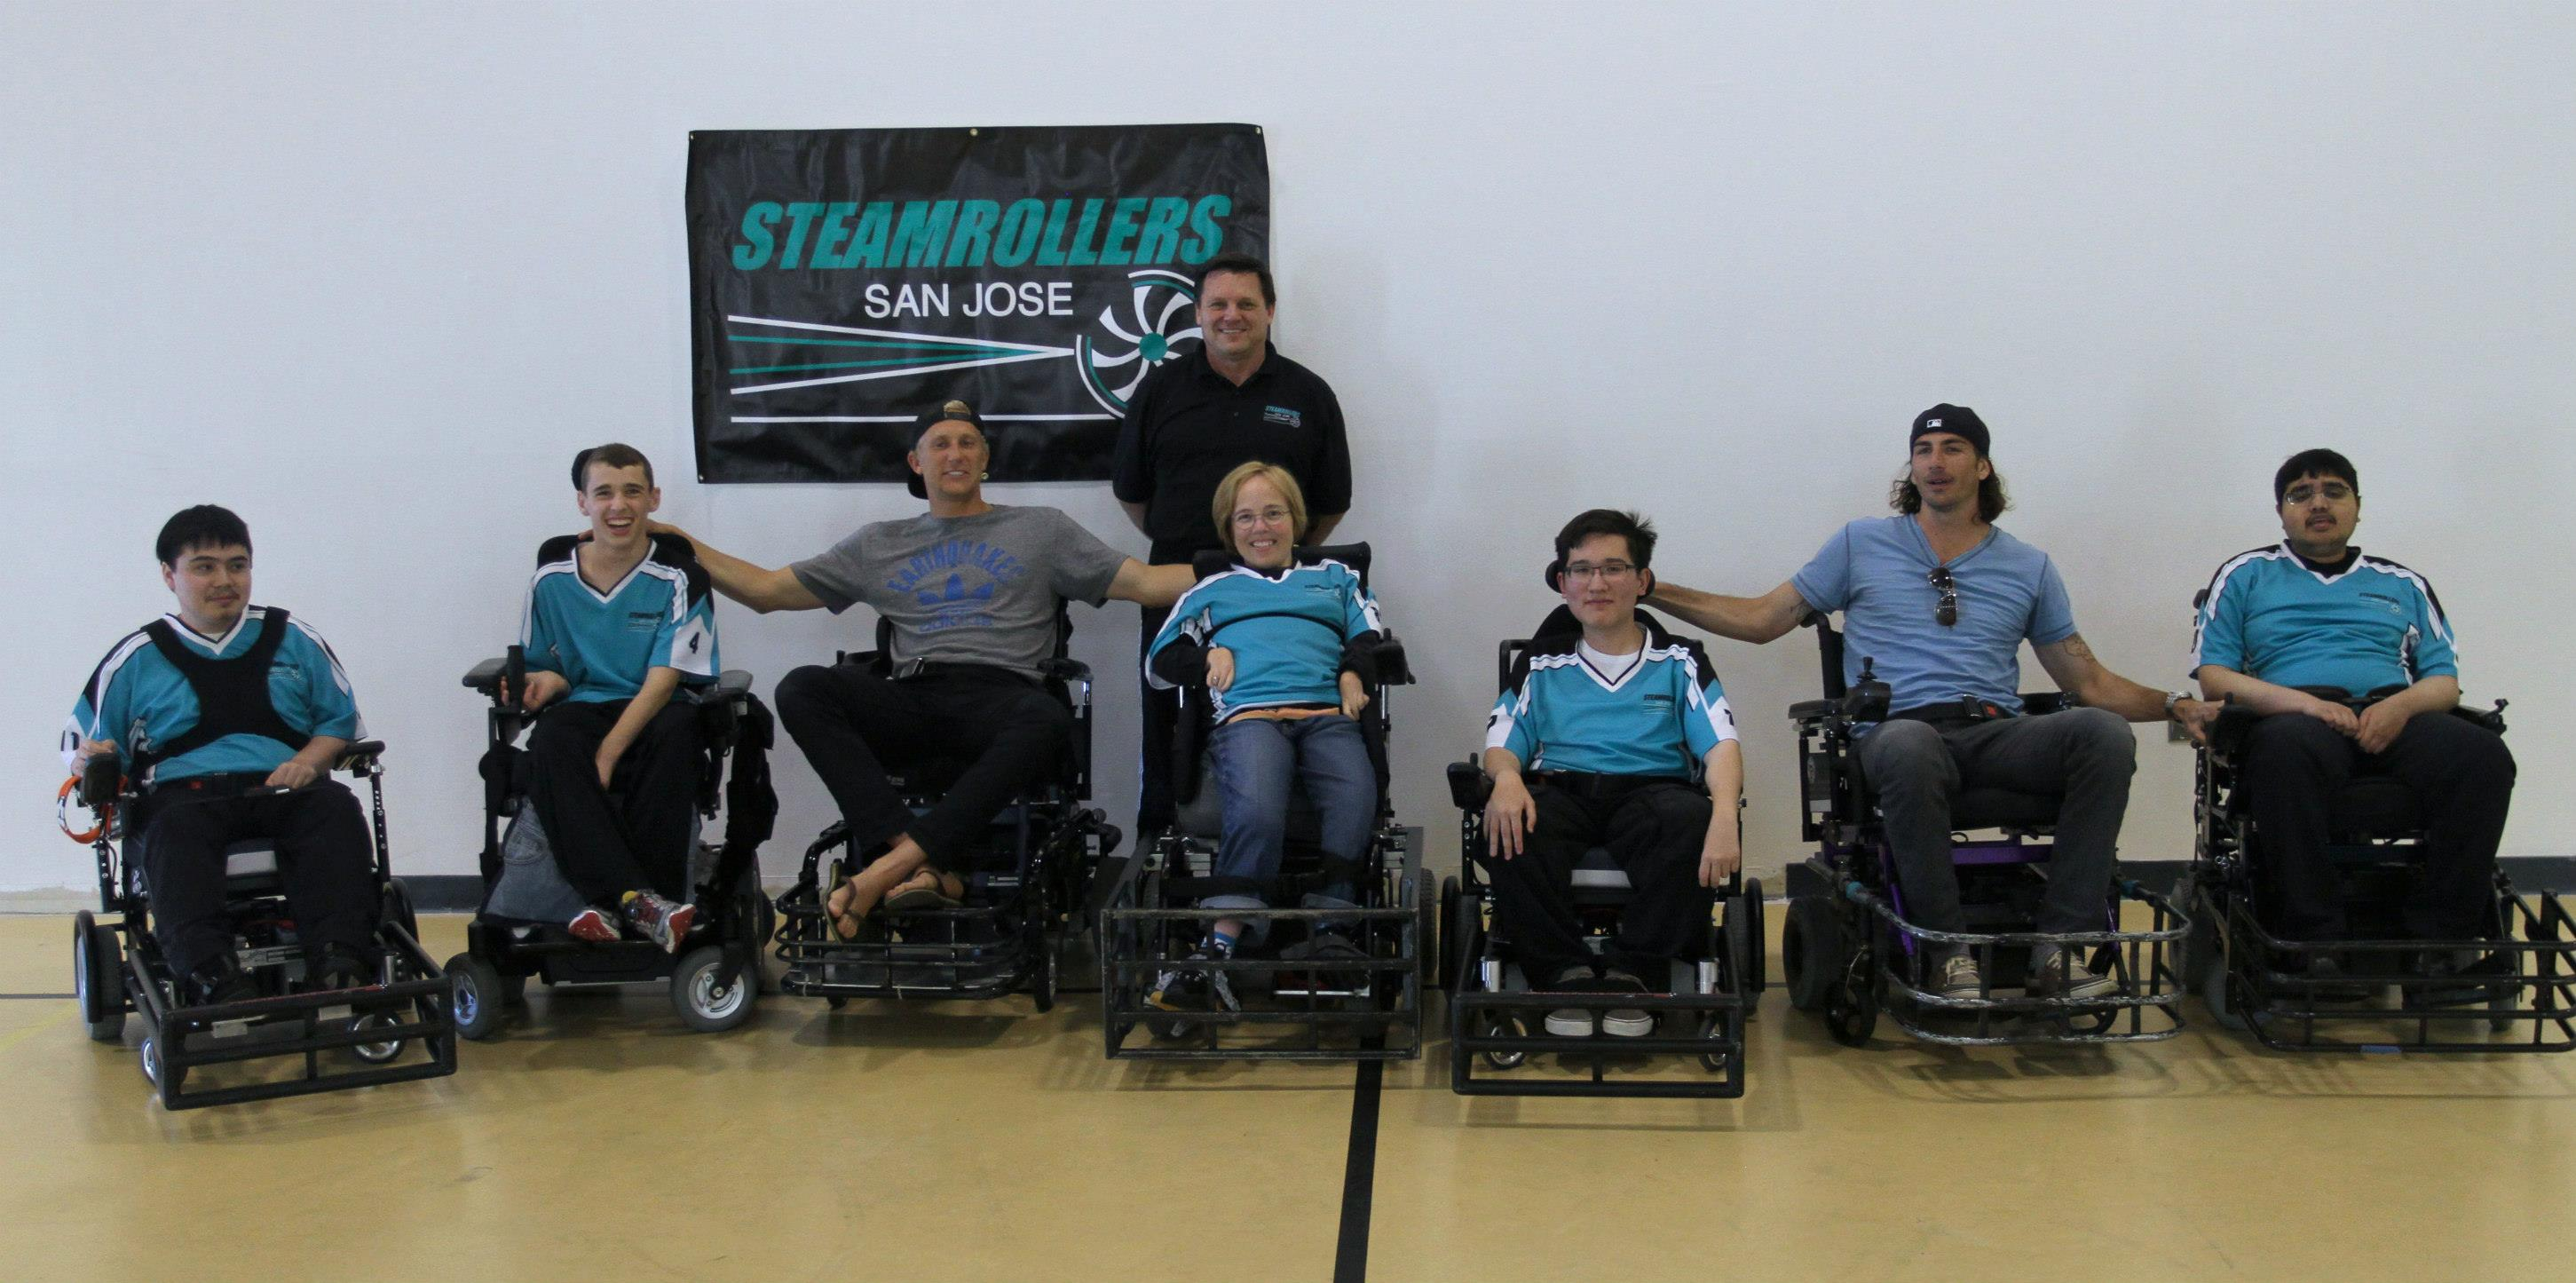 steamrollers team shot with Lenhart and Gordon